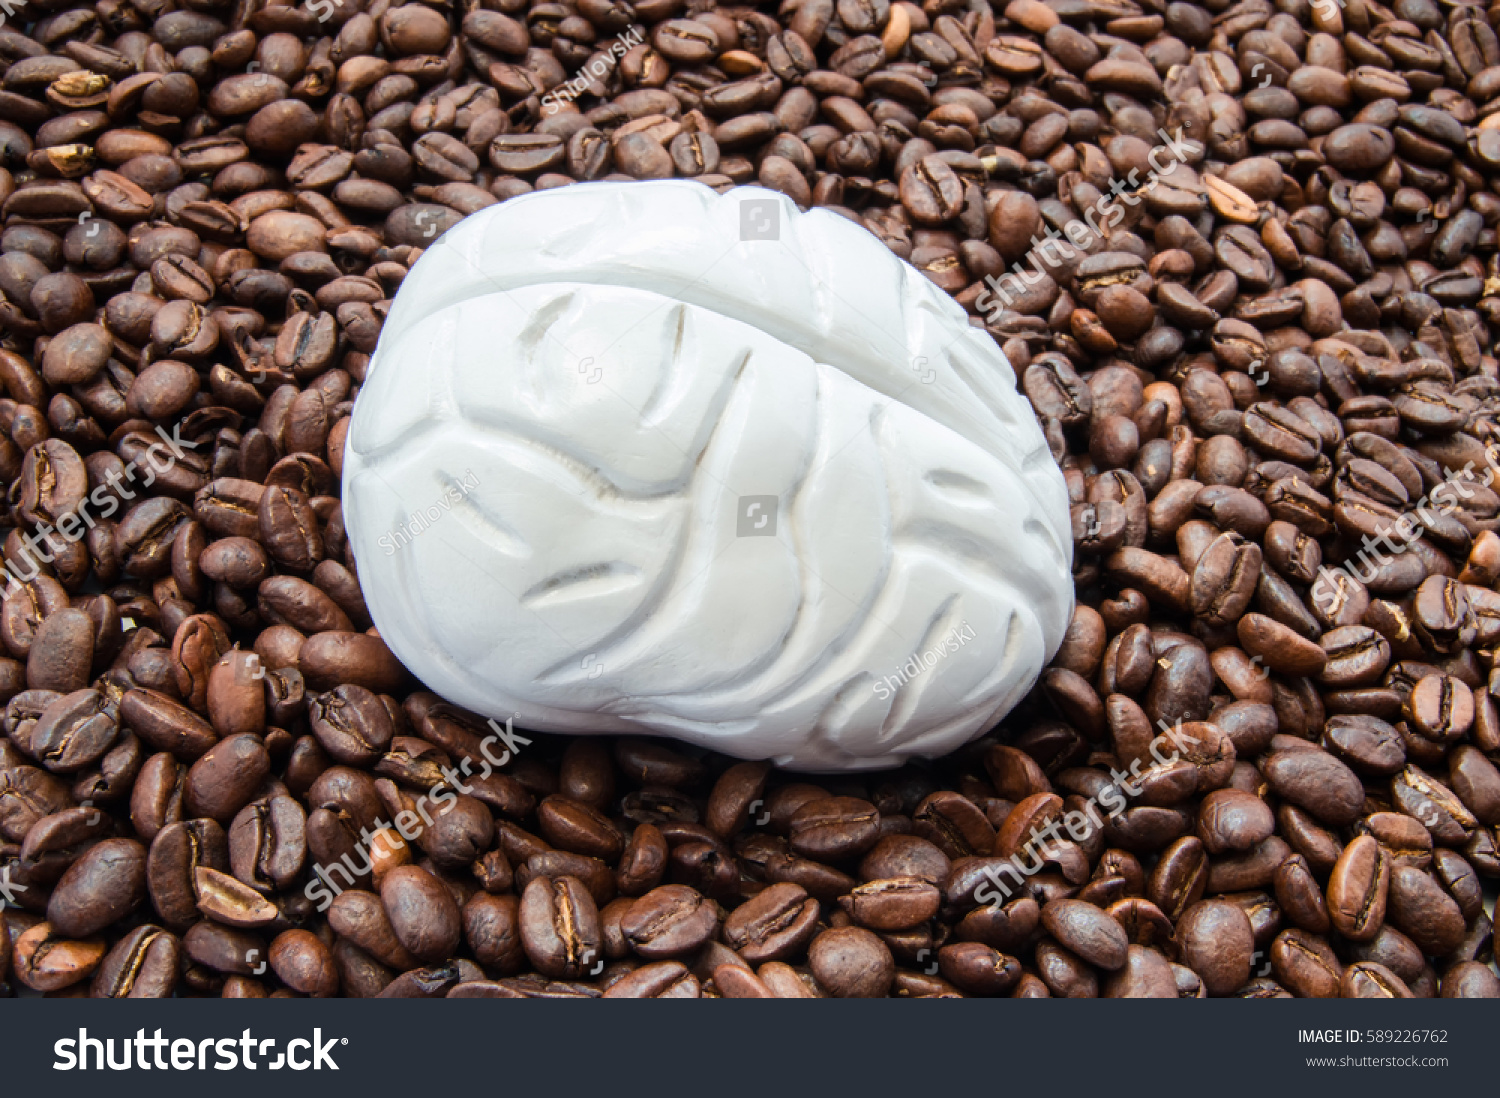 Brain Coffee Caffeine Brain Model Among Stock Photo 589226762 ...